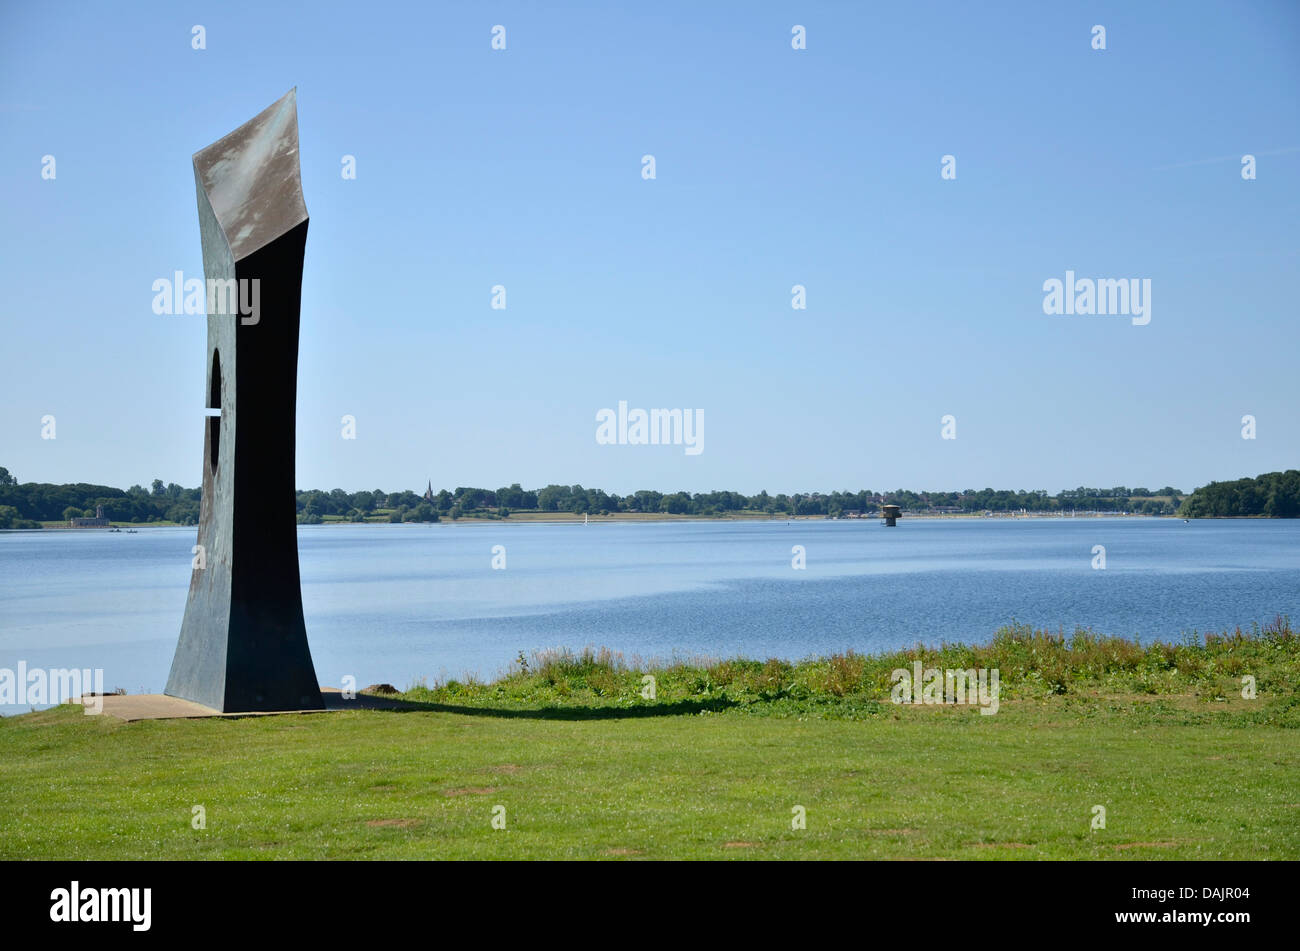 A Great Tower sculpture on the south eastern shore of Rutland Water in Rutland, Leicestershire - Stock Image